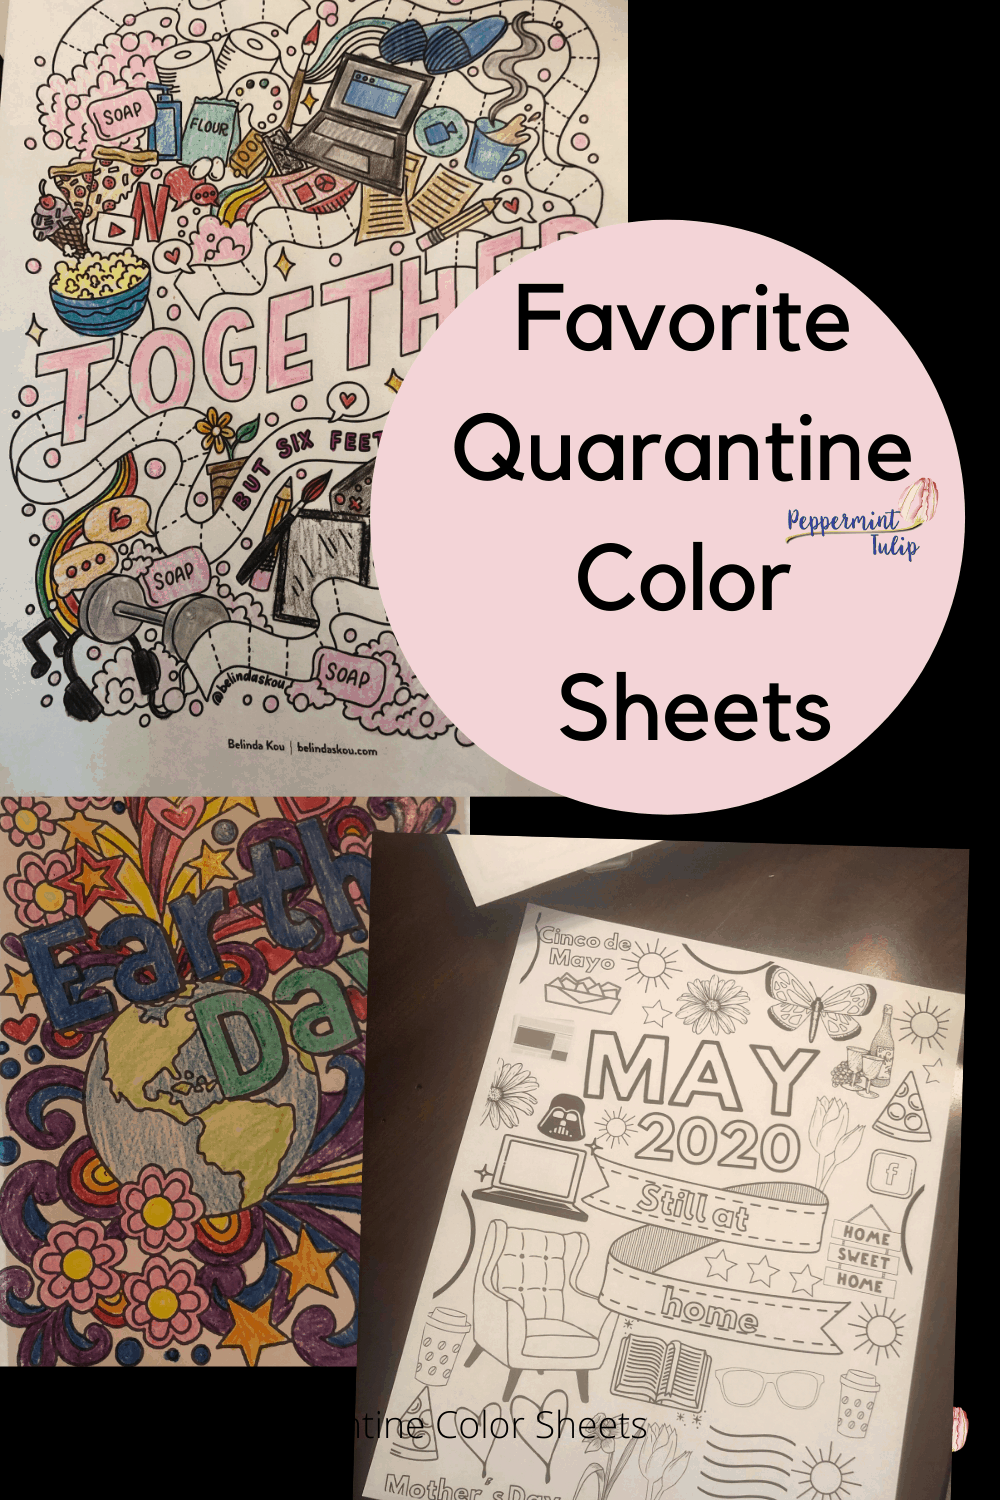 Favorite Quarantine Color Sheets